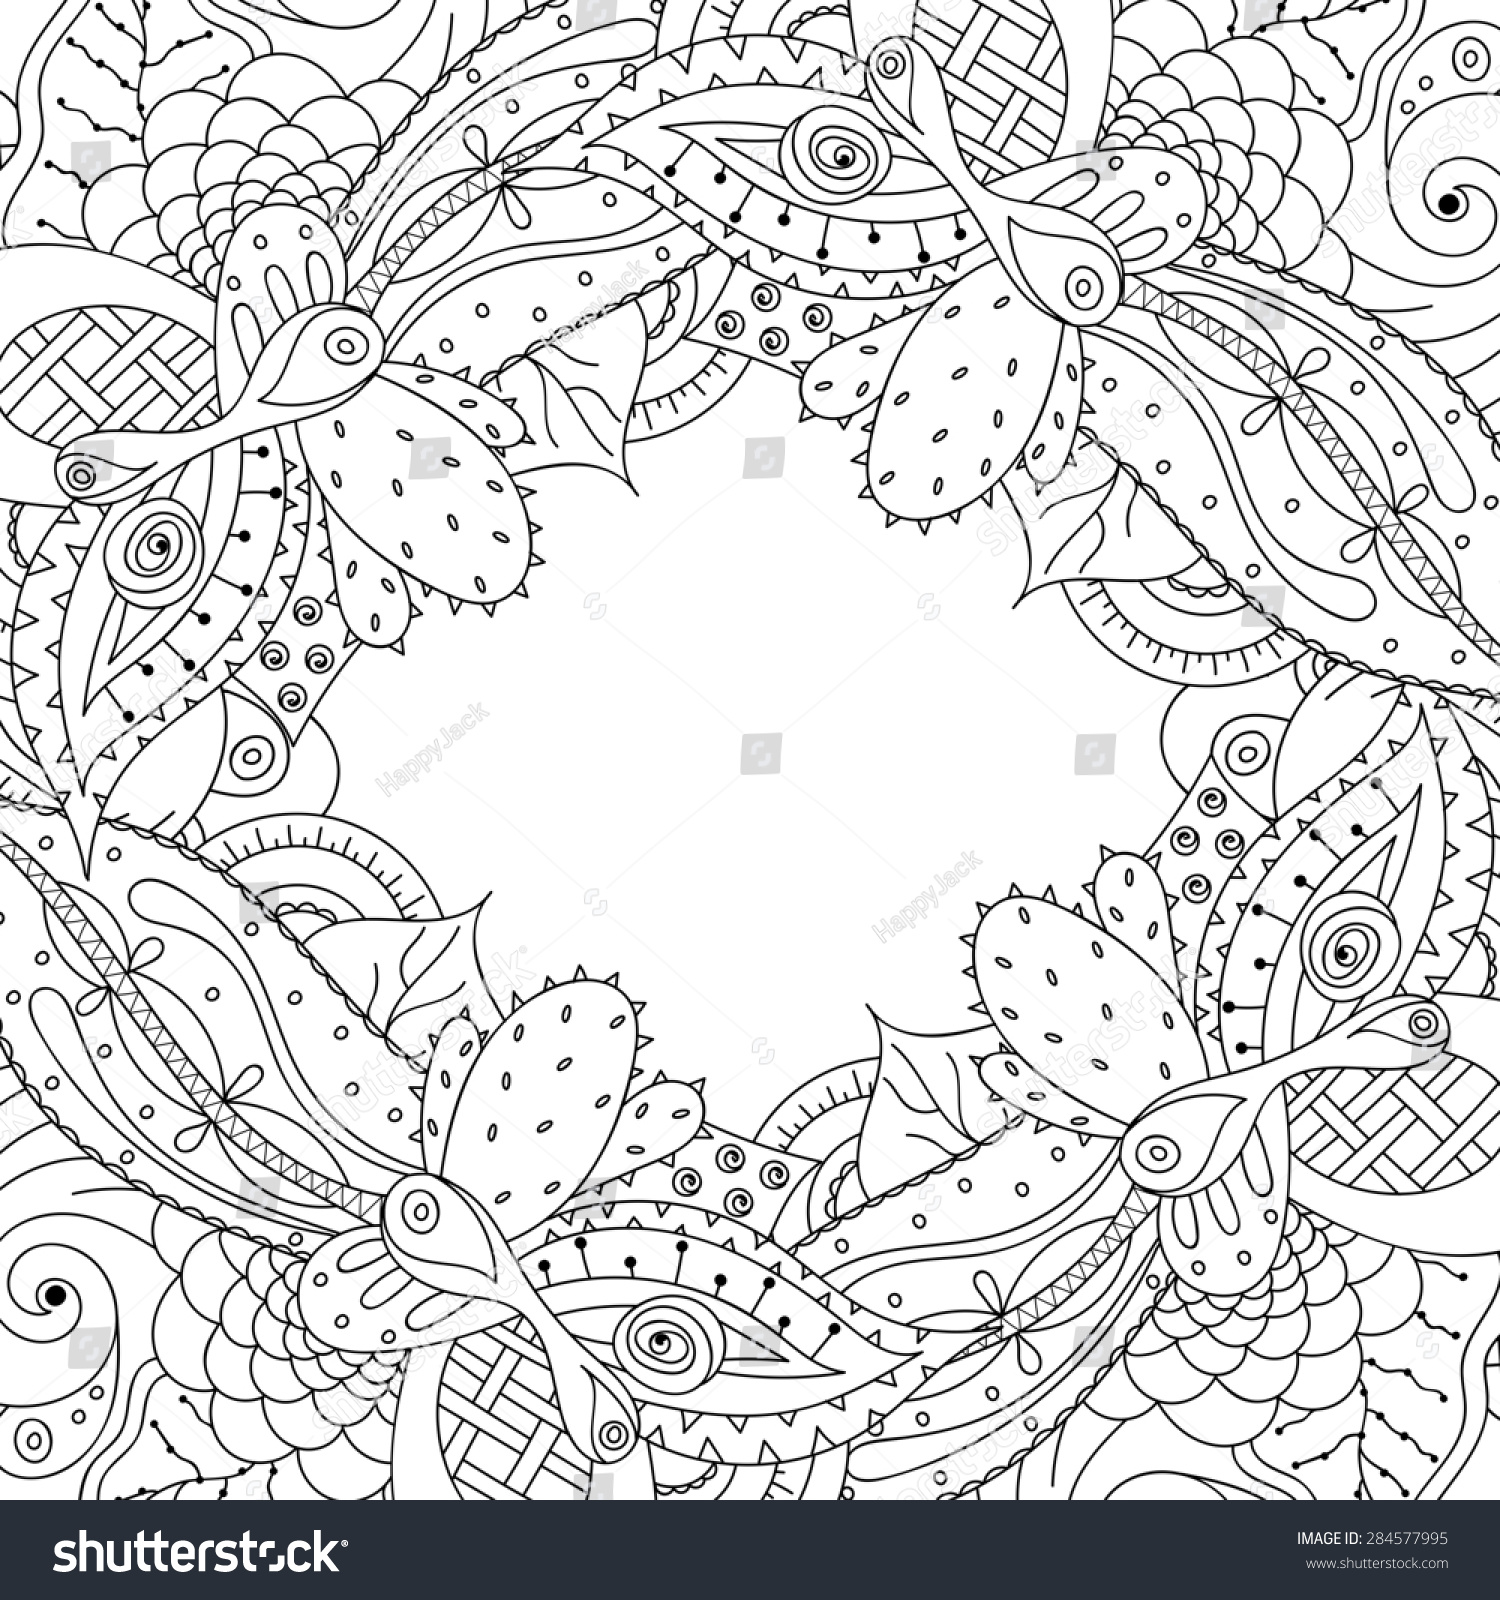 Hand Drawn Doodle Frame With Place For Text Abstract Zentangle Background Cactus